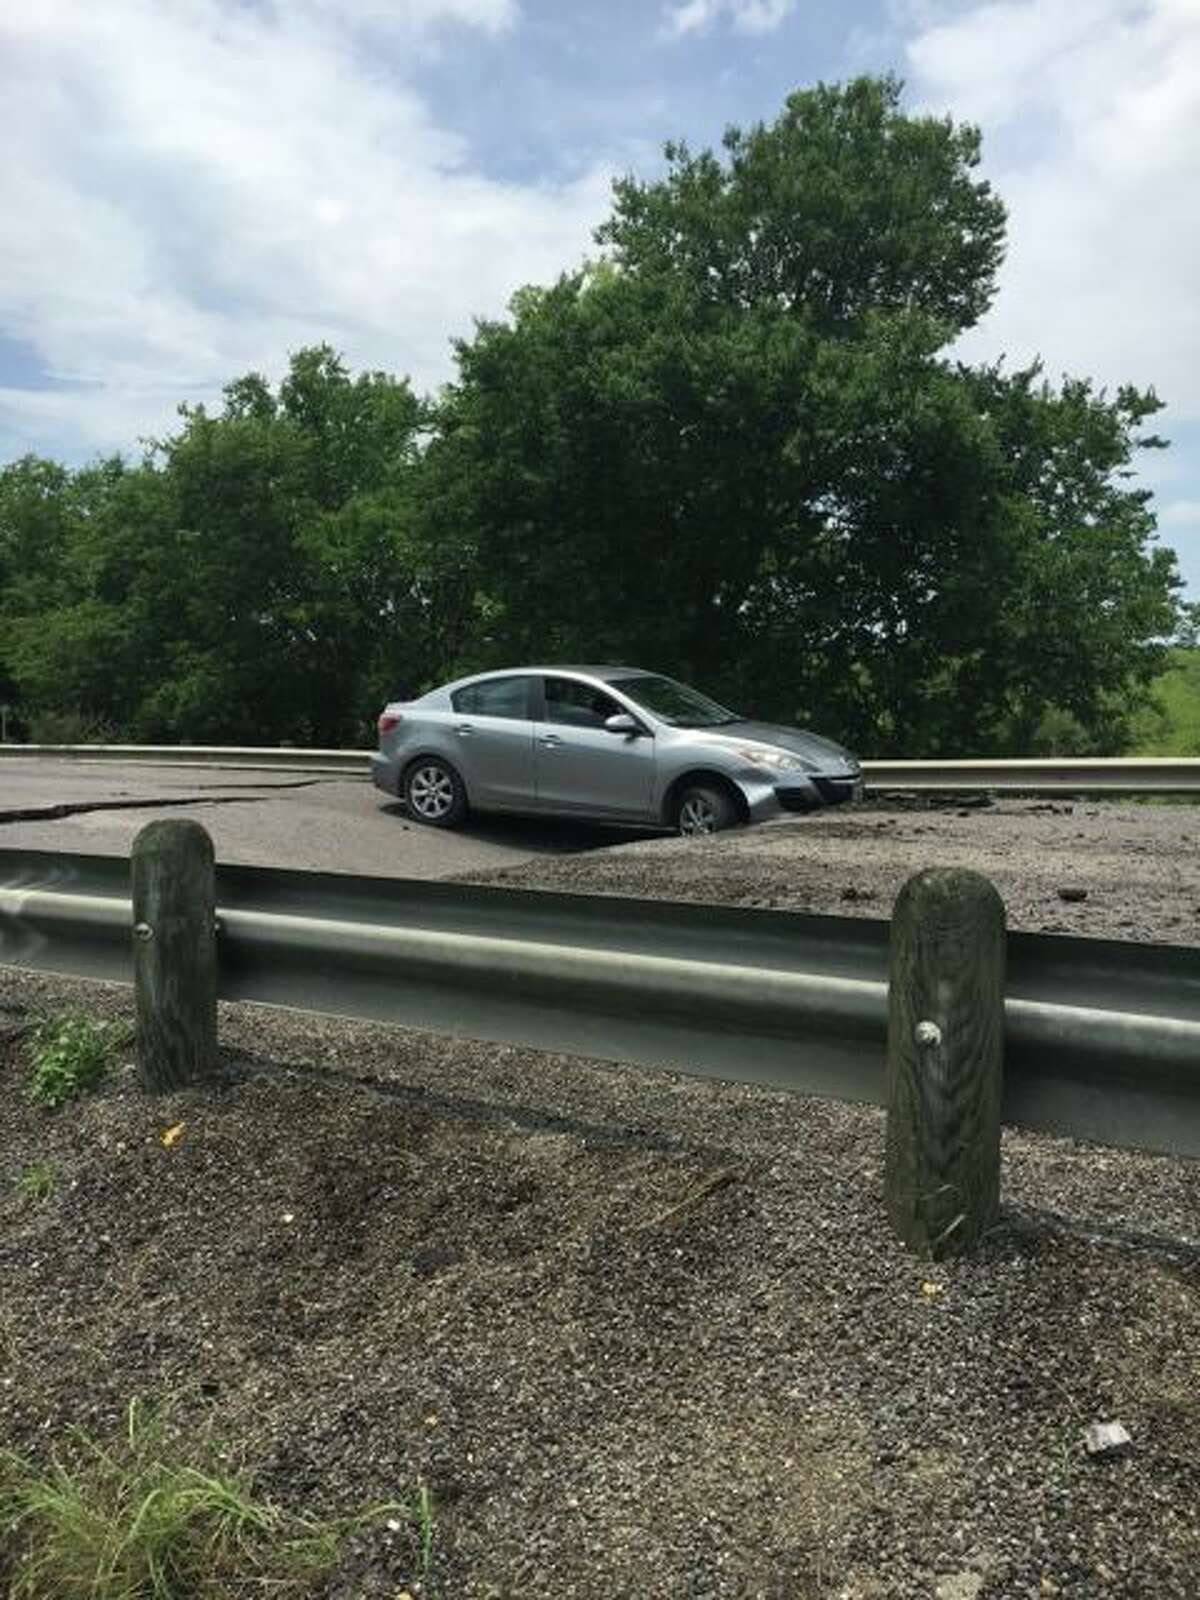 Over the weekend, 11 vehicles have forced their way through the barrier on SH 21 near FM 2001 in Hays County and got stuck in the collapsed roadway.